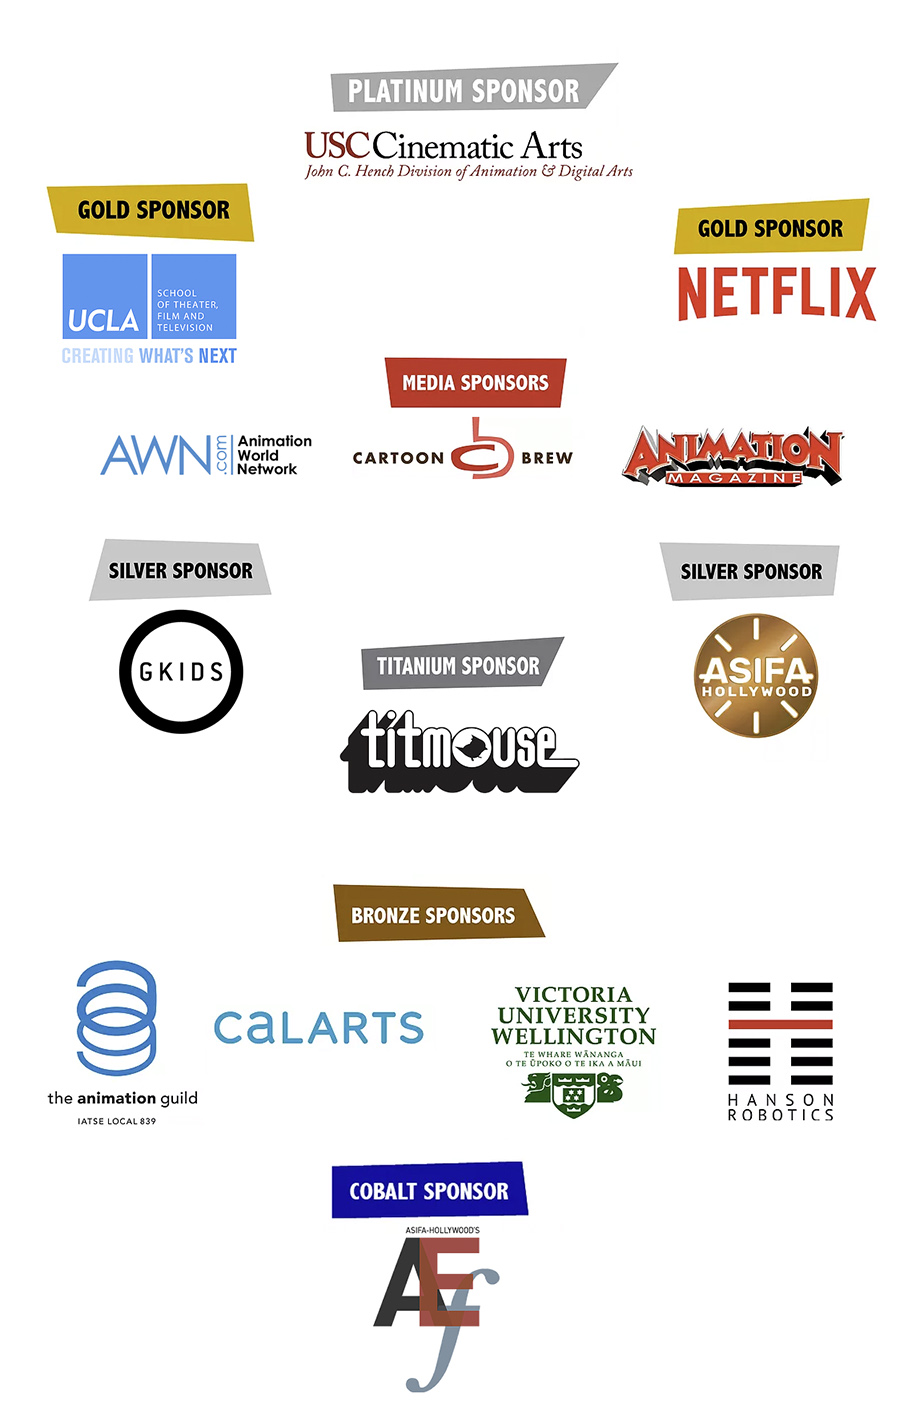 Sponsors of BTGF (source: https://www.breakingtheglassframe.com/sponsor)